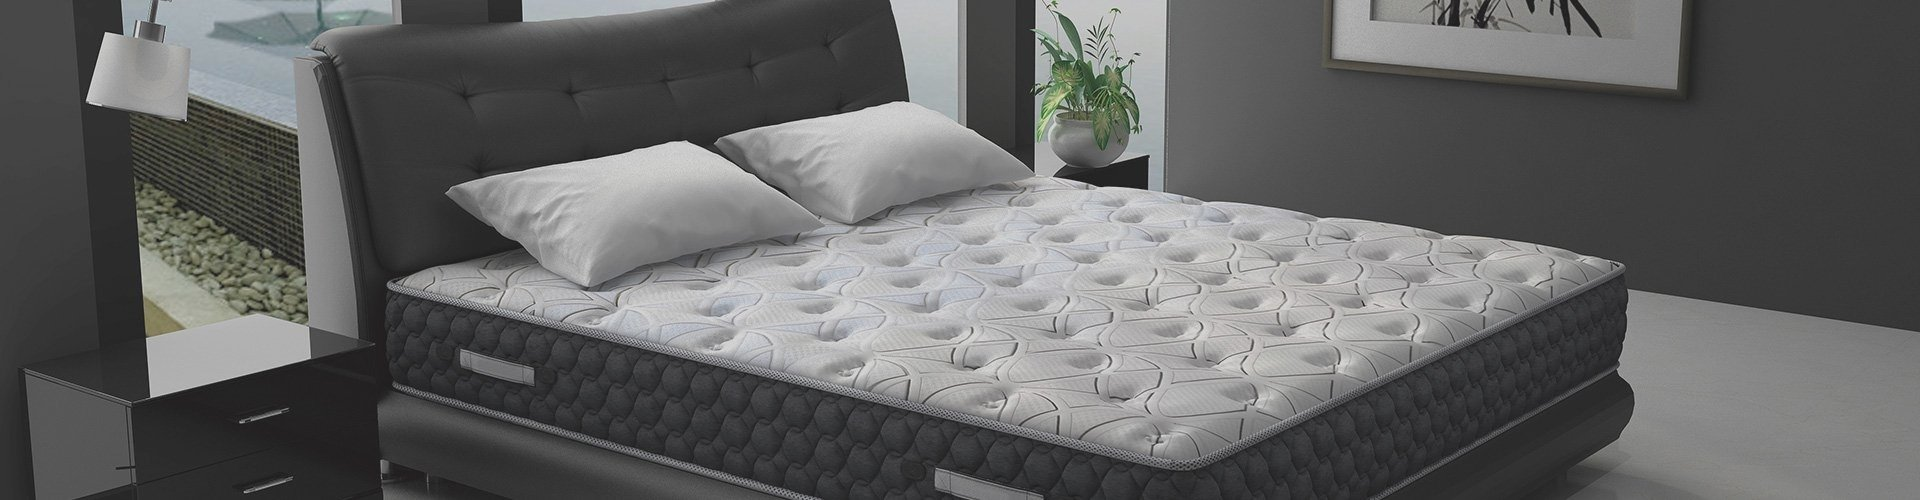 best-luxuty-mattress_main1